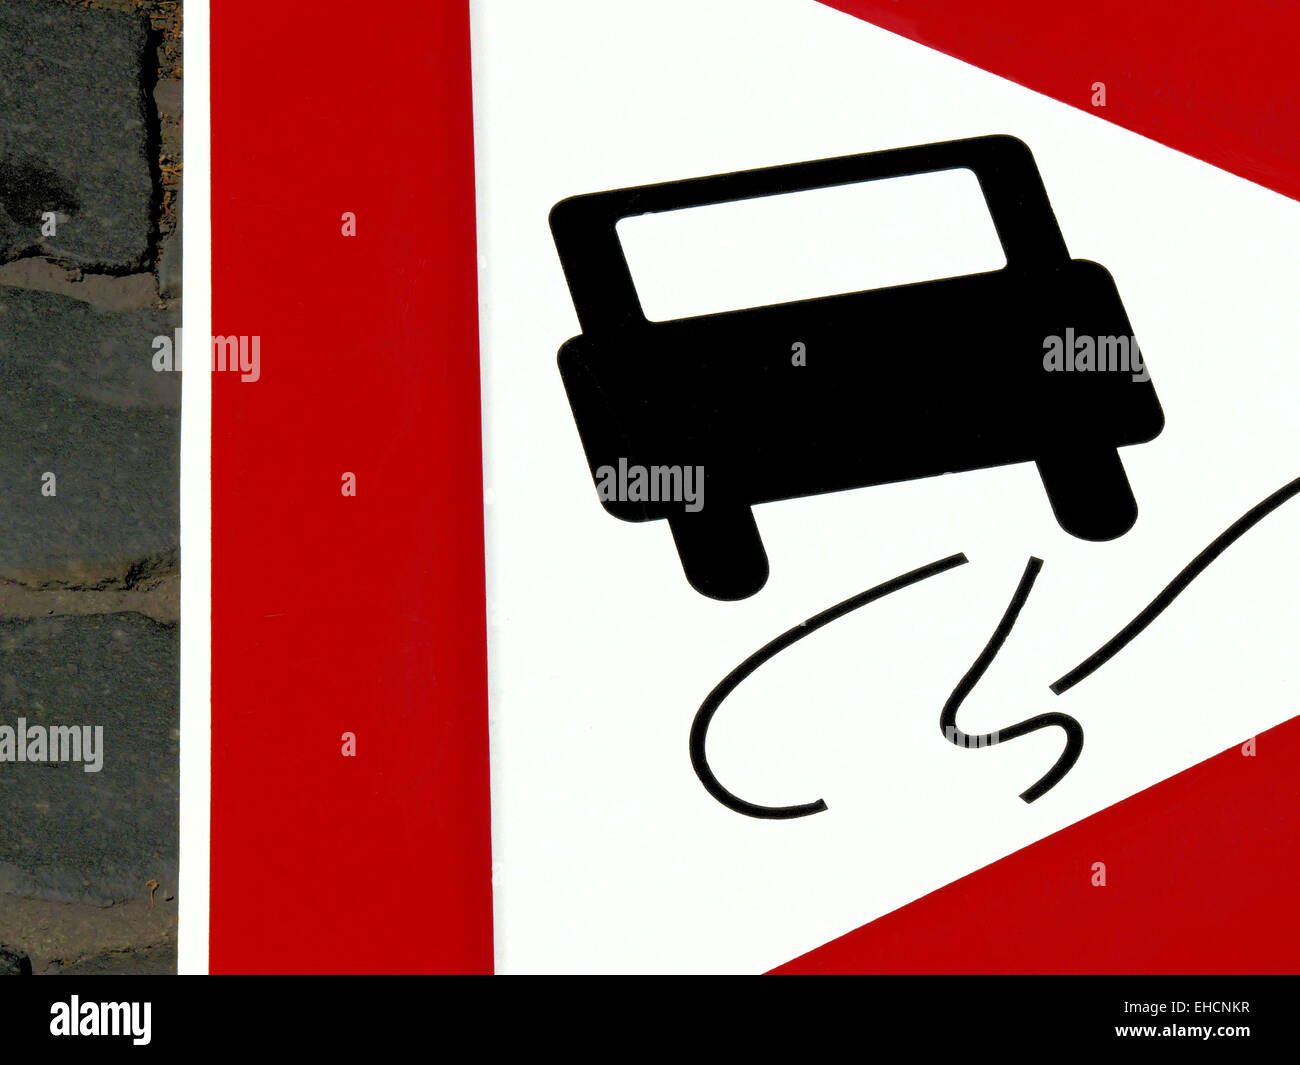 Attention Slippery road - Stock Image